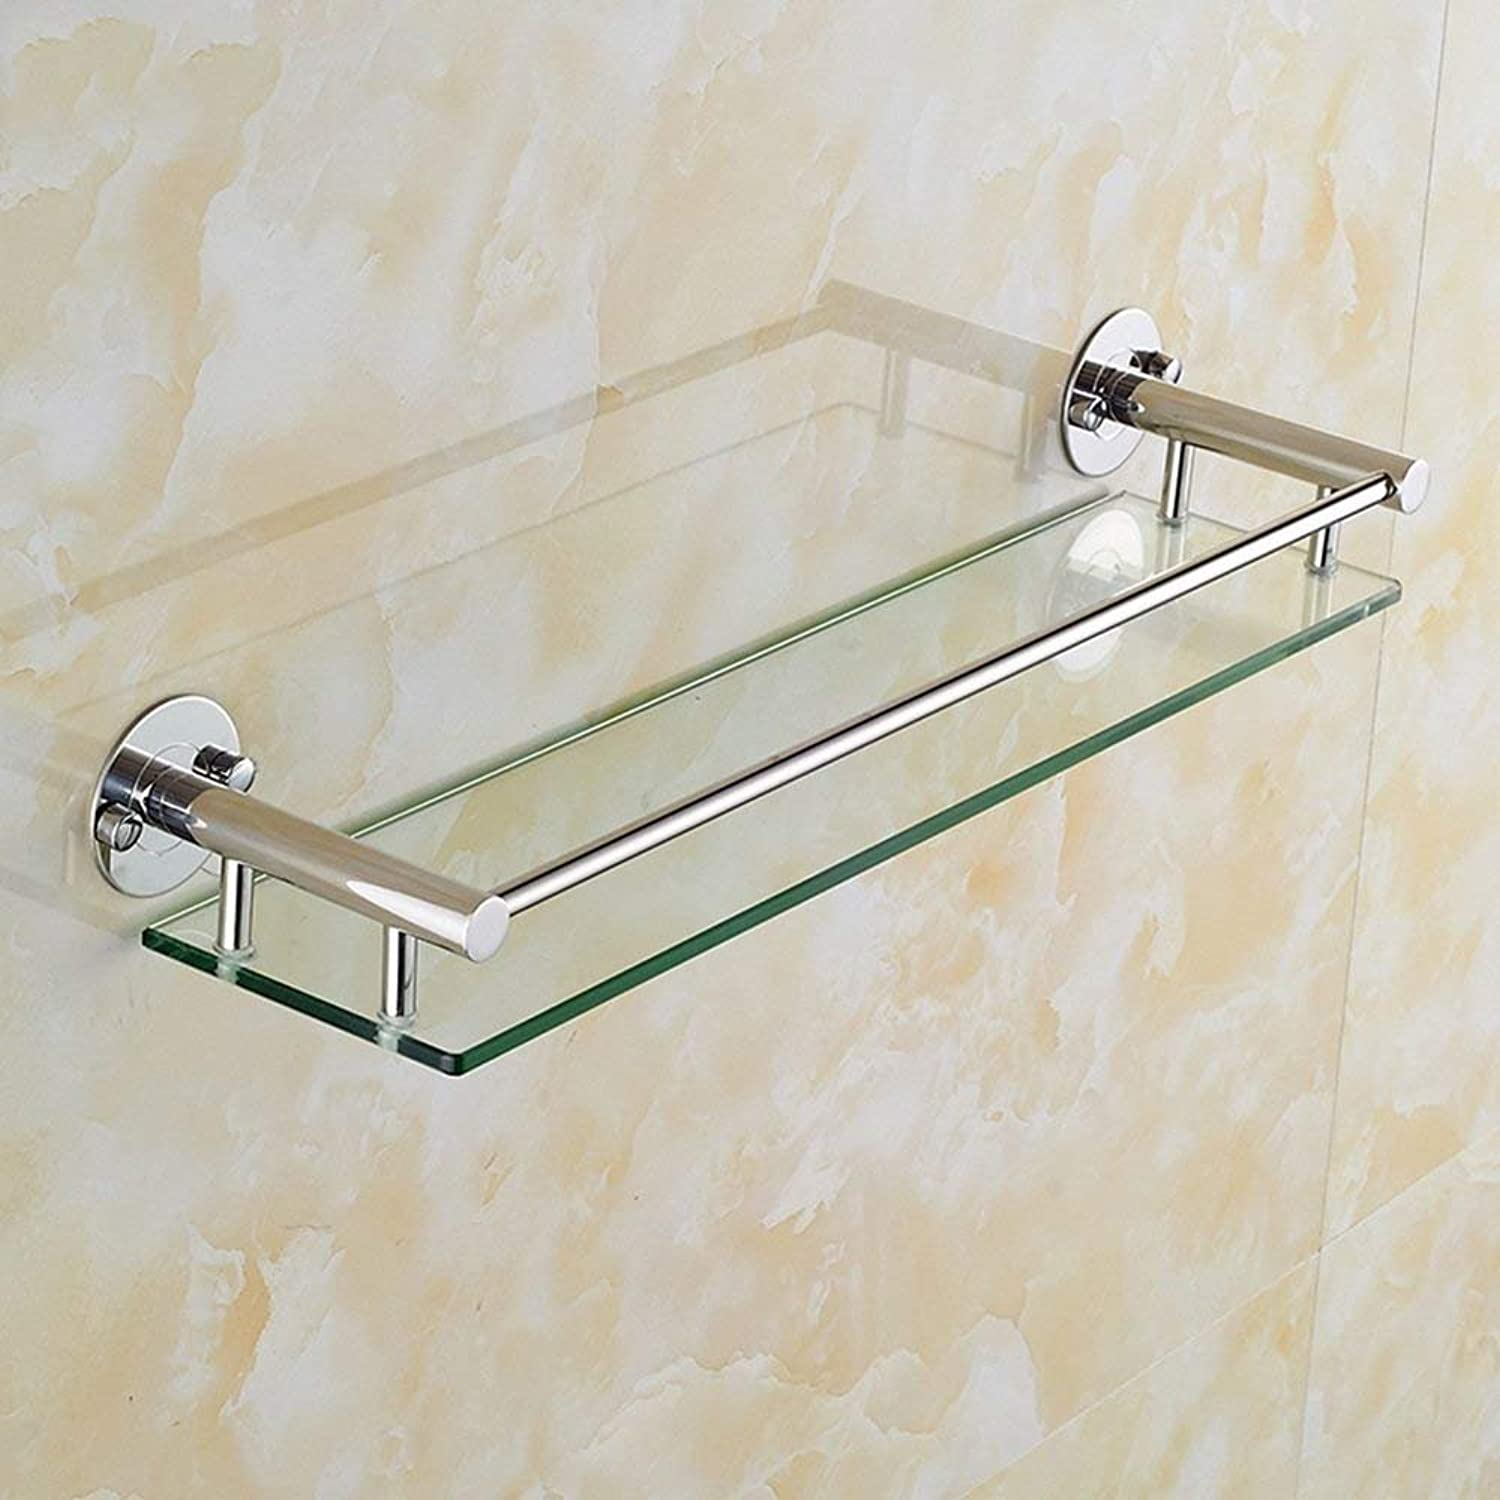 Bathroom Rack Wall Stainless Steel and Glass Three Sizes (Size  12  40cm)